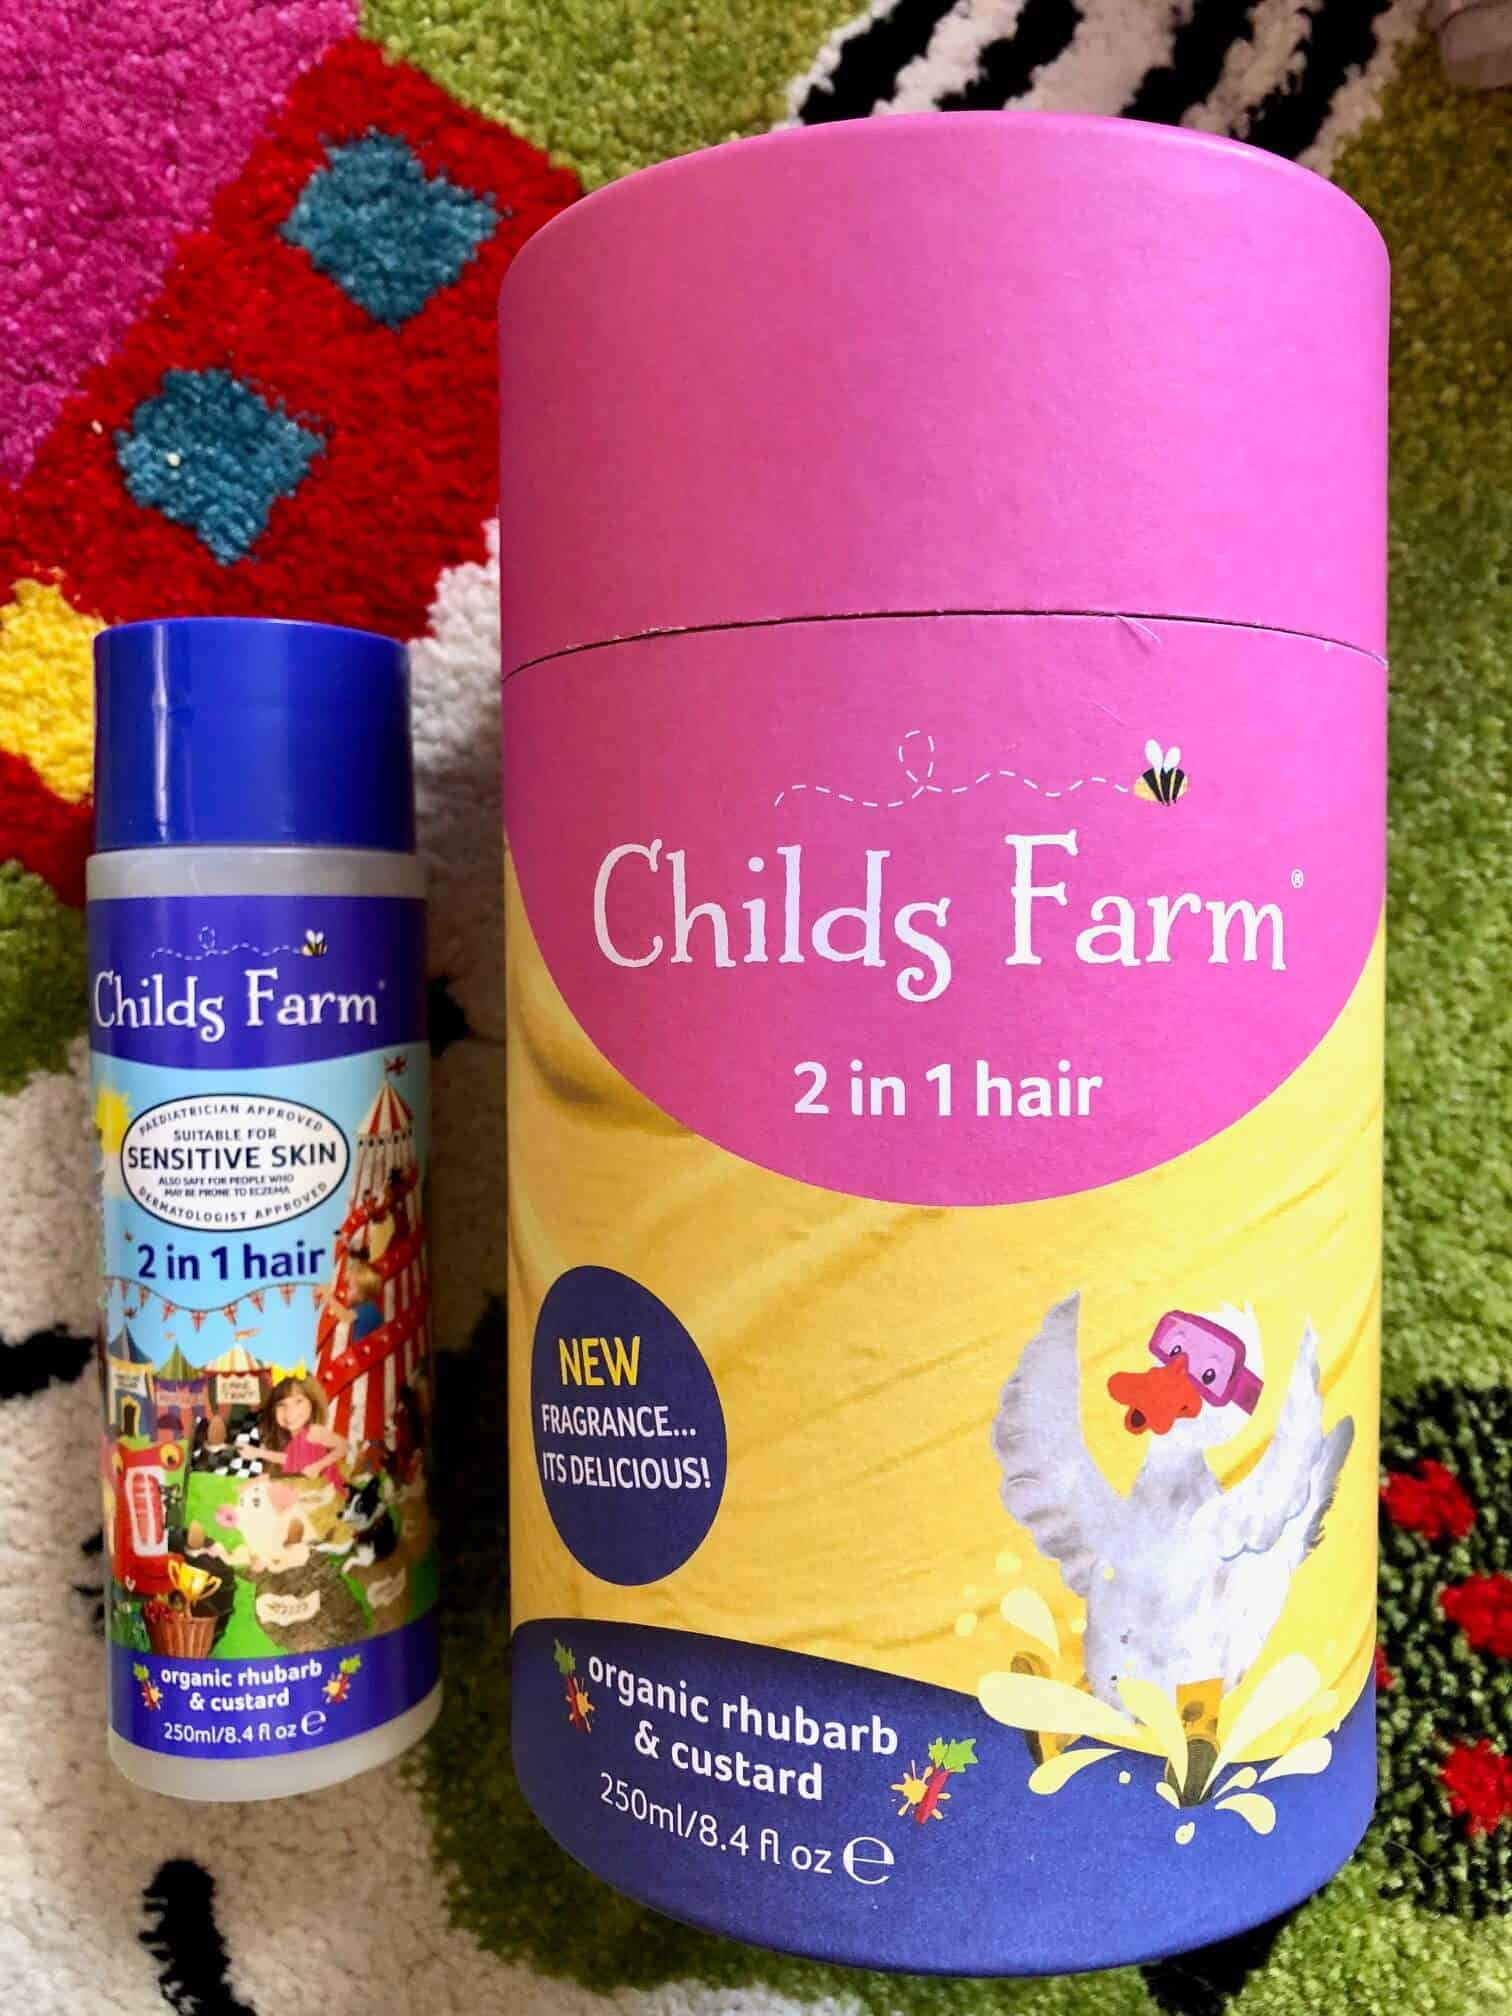 Child's Farm 2 in 1 hair